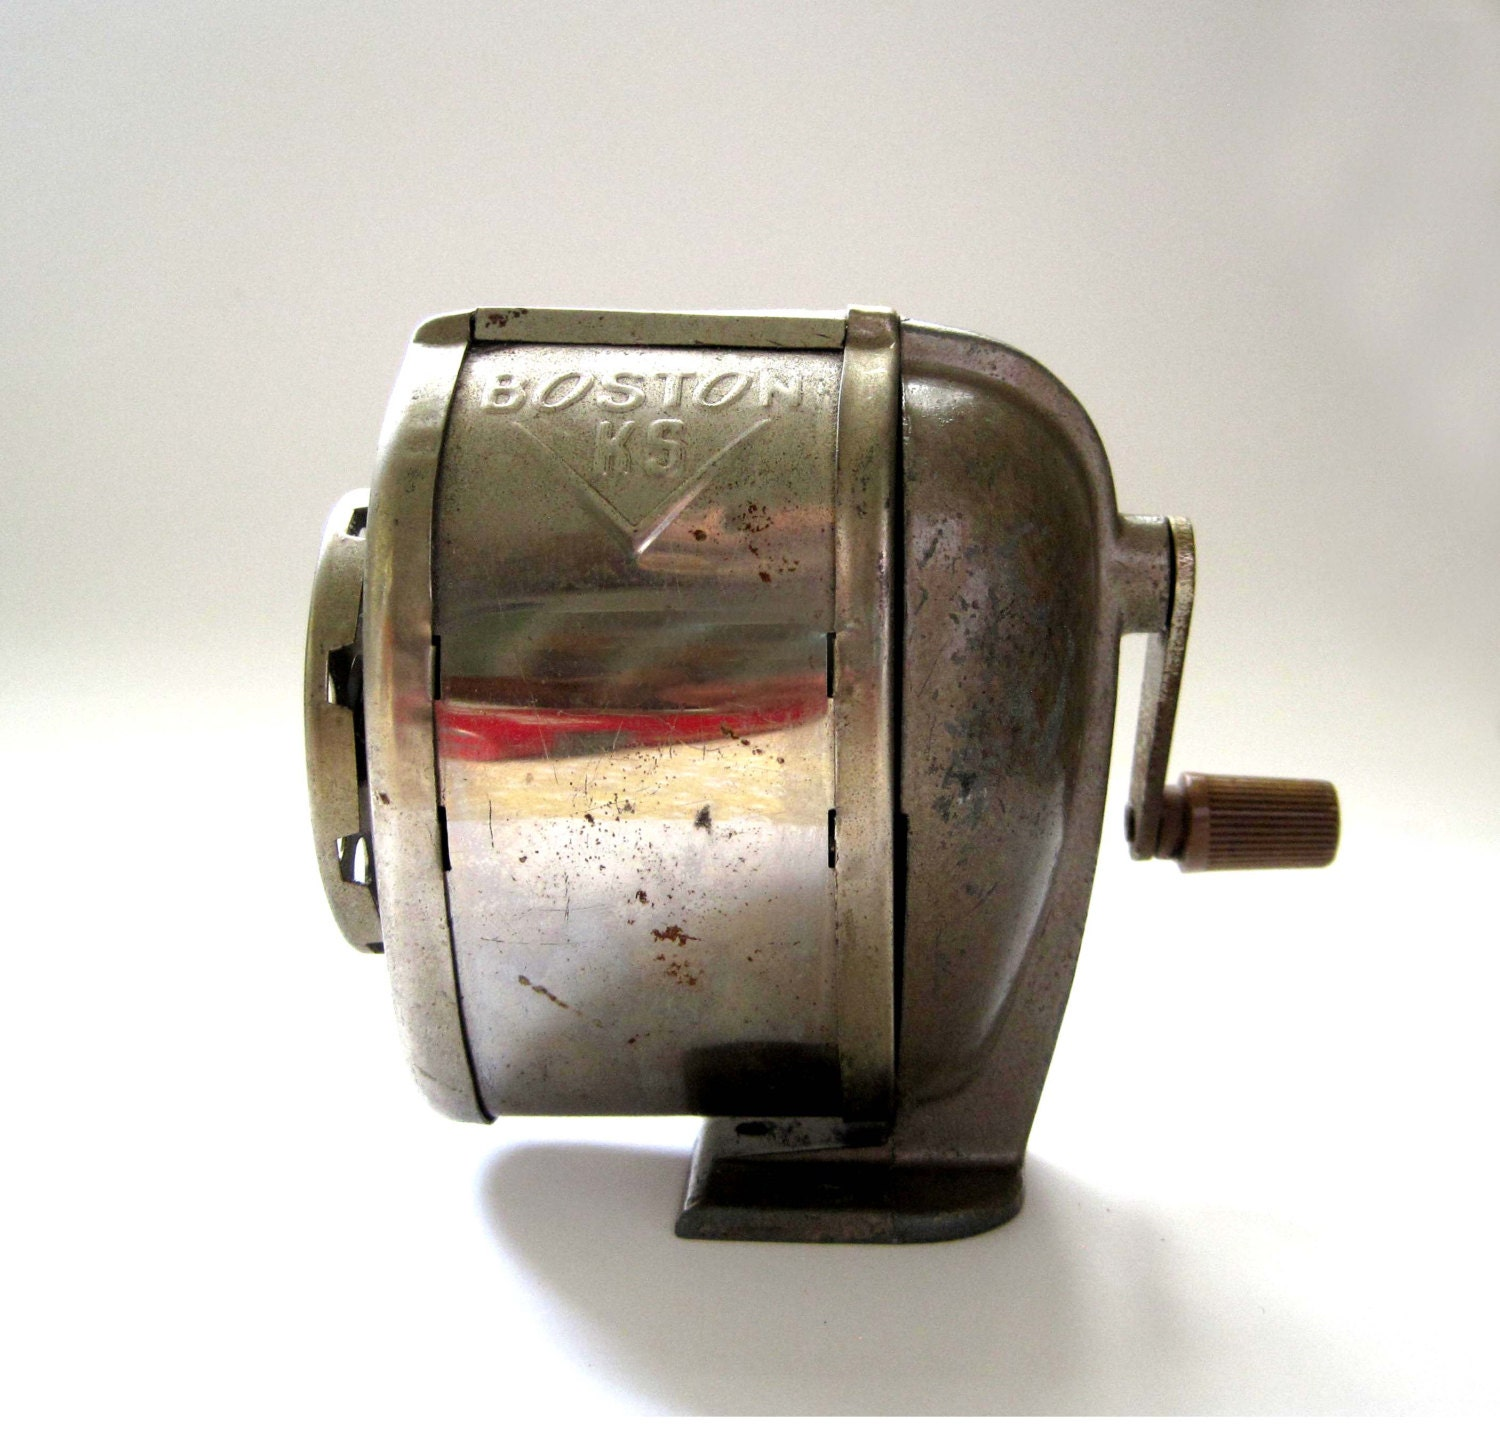 Vintage Boston K5 Pencil Sharpener Mid Century Chrome And